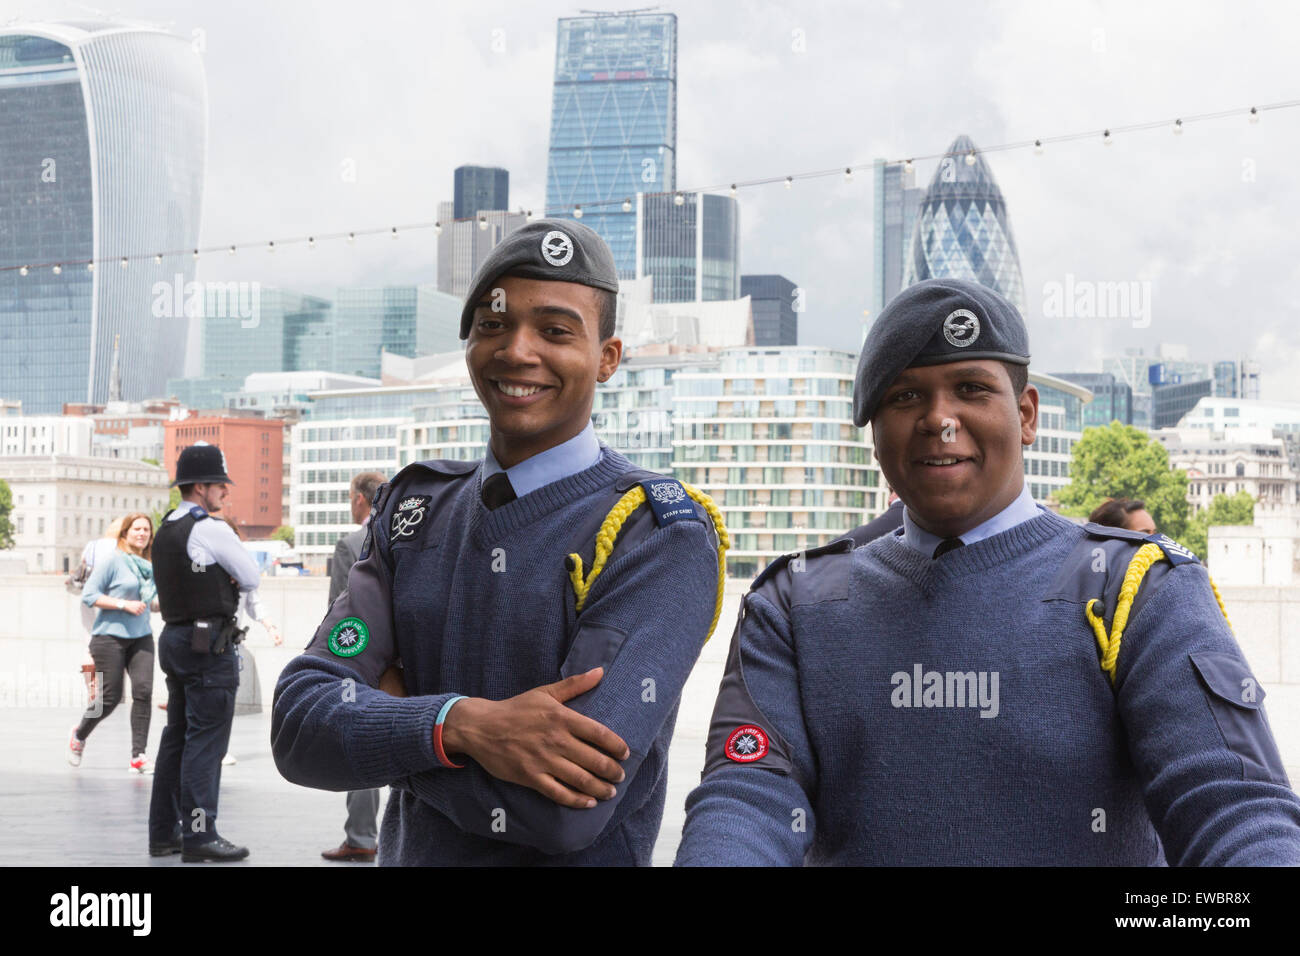 London, UK. 22 June 2015. Young Royal Airforce Air Cadets before the event. Boris Johnson, the Mayor of London, - Stock Image